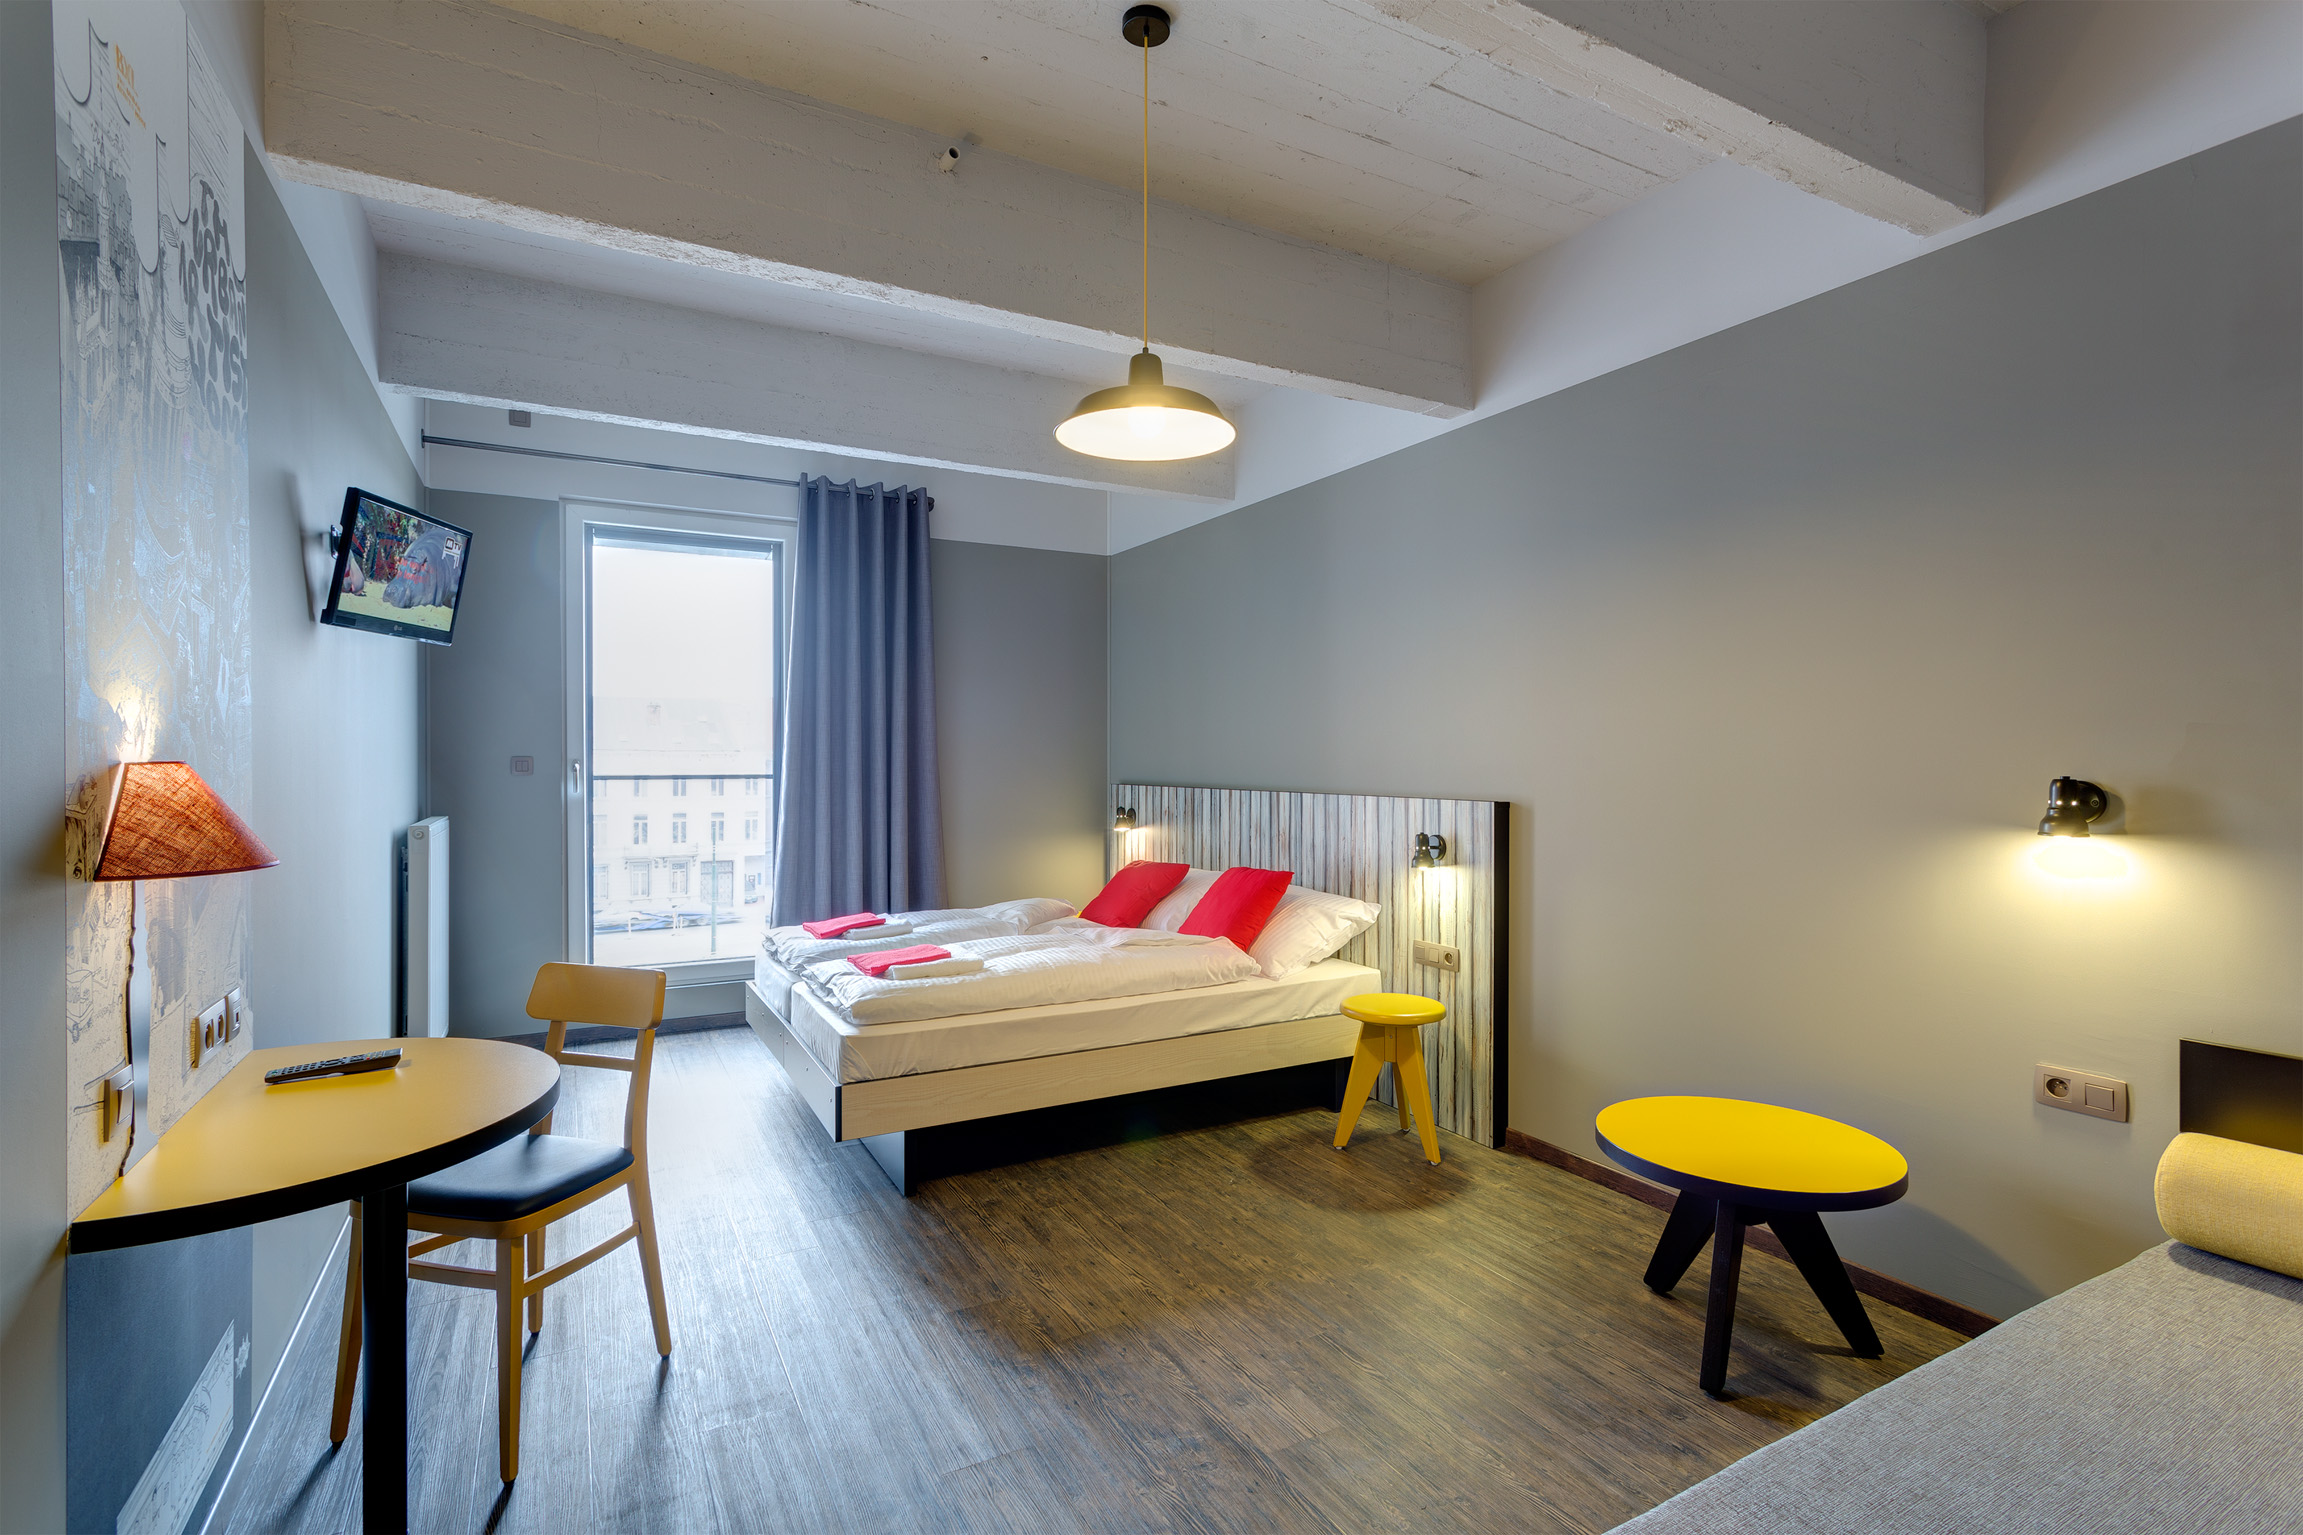 Meininger hotel brussels city center online booking for Top design hotels belgium